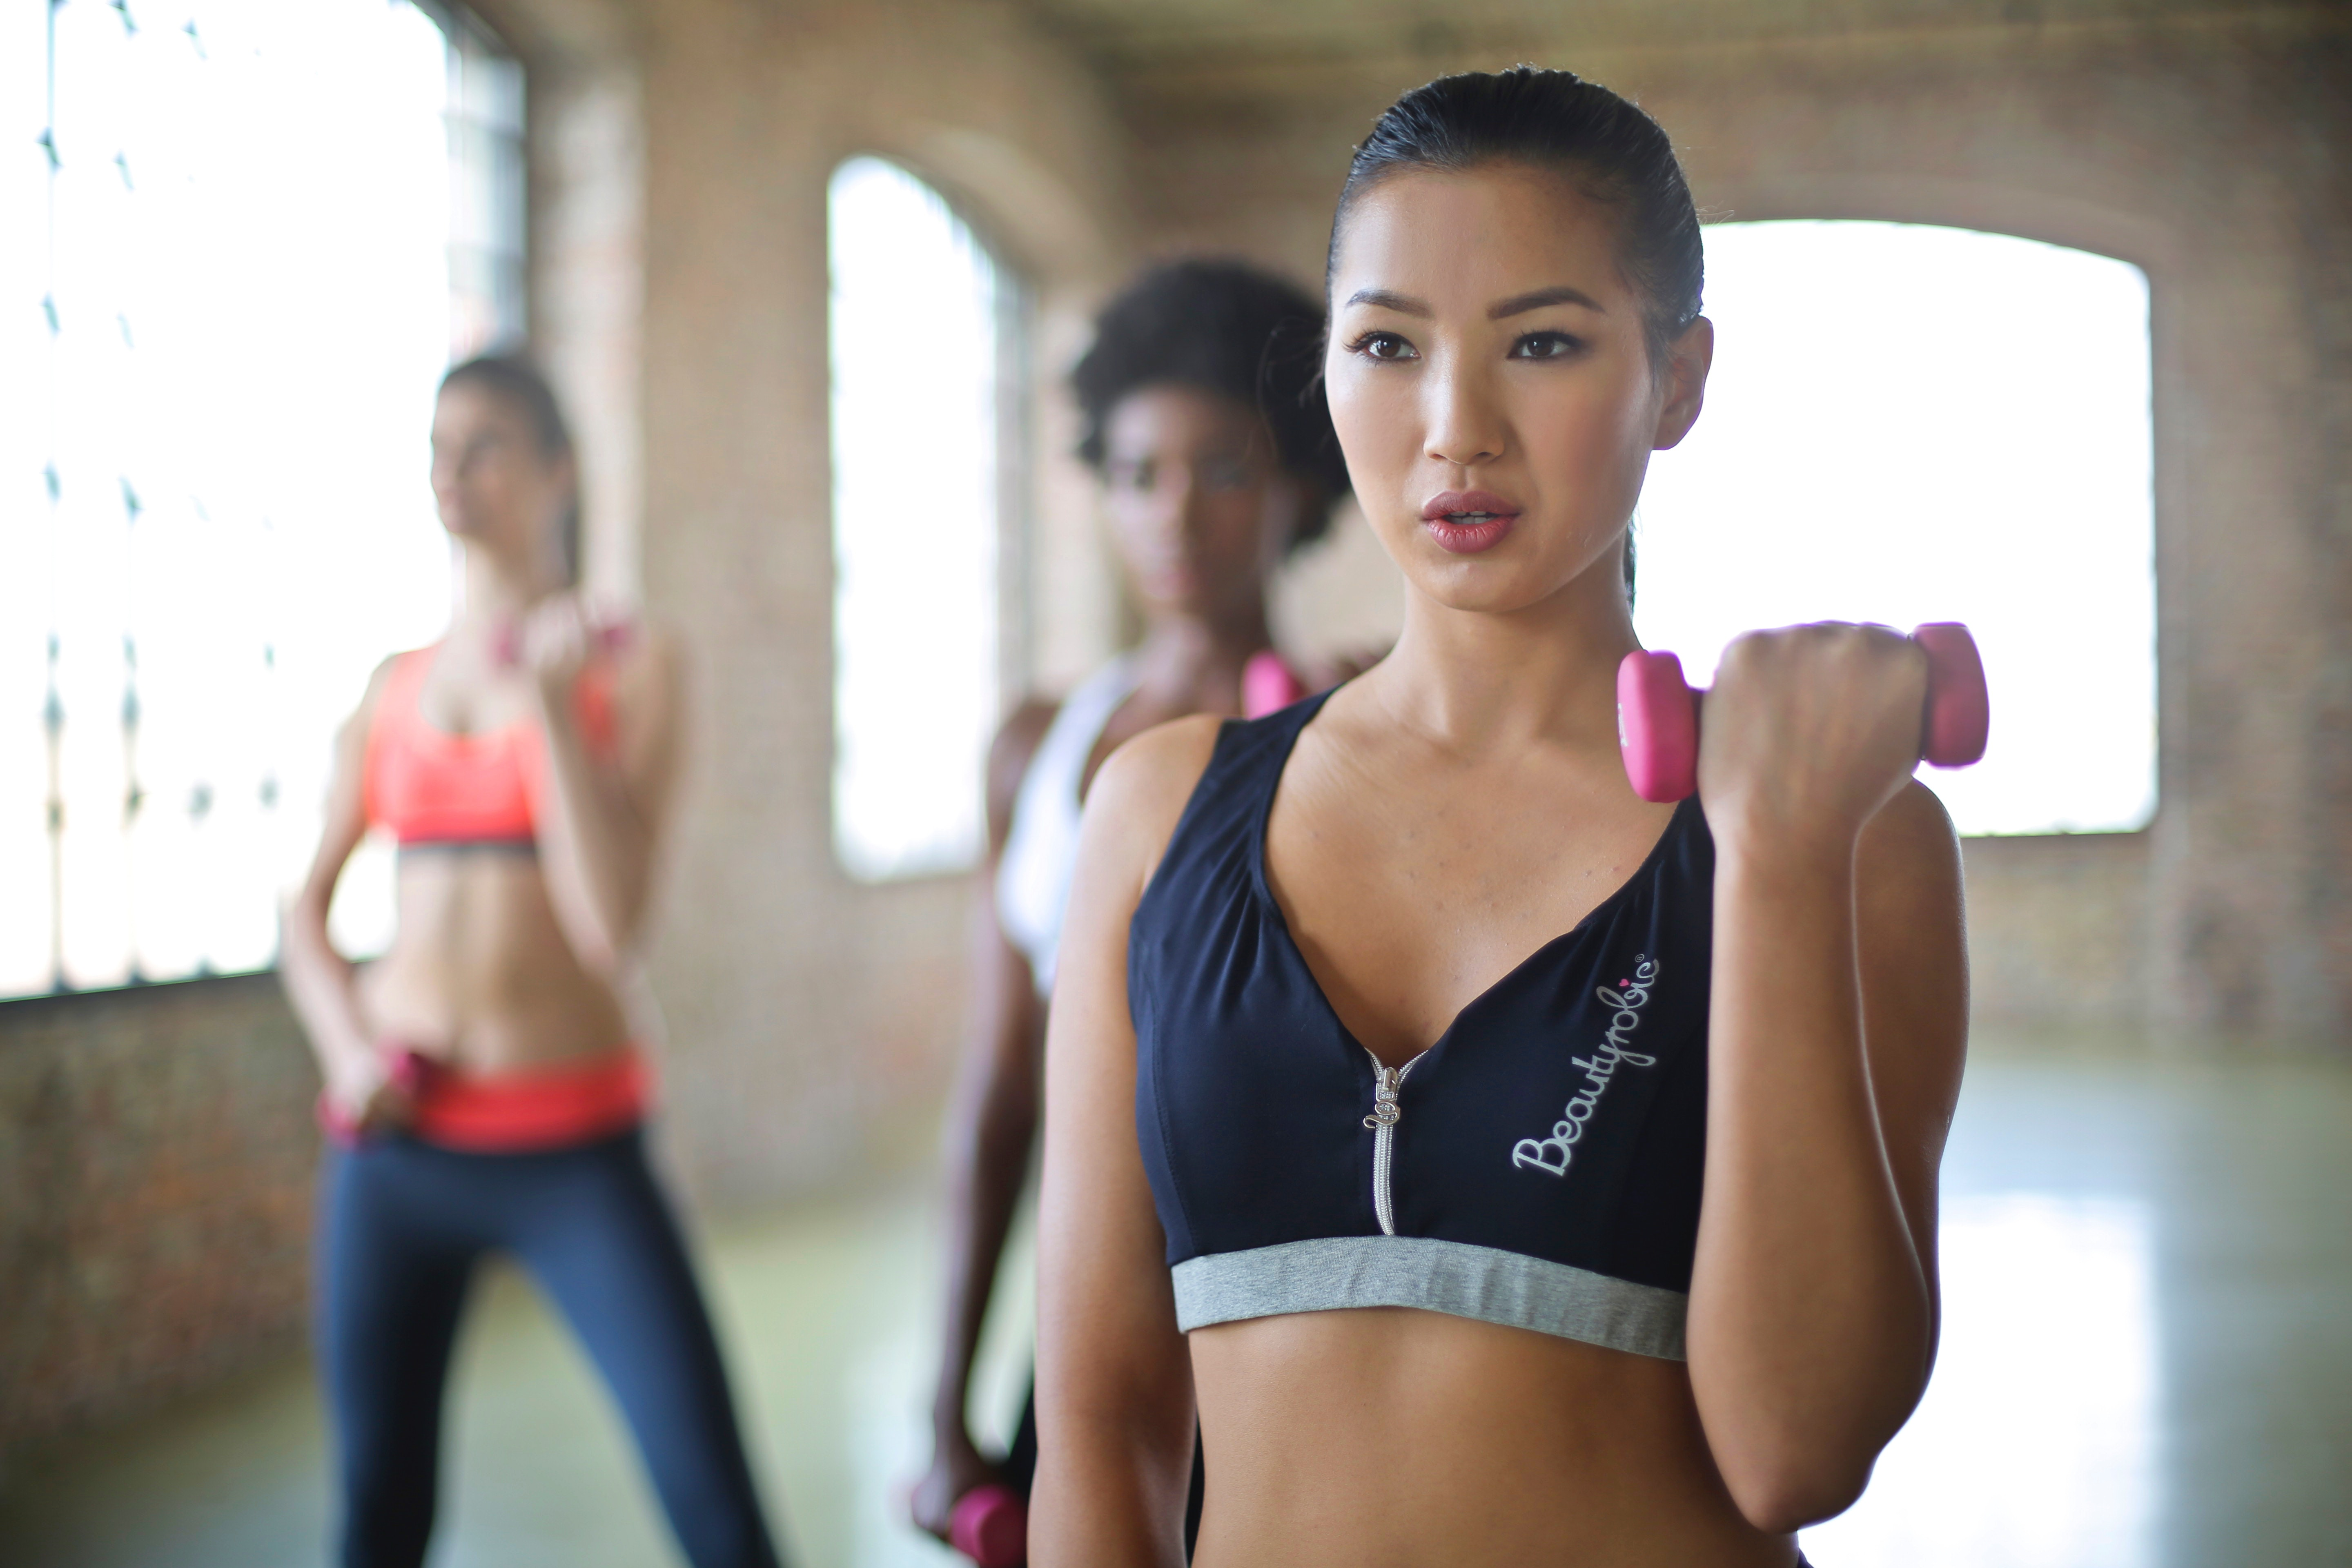 Woman Wearing Black and Gray Sport Bra, Active, Gym, Workout, Woman, HQ Photo